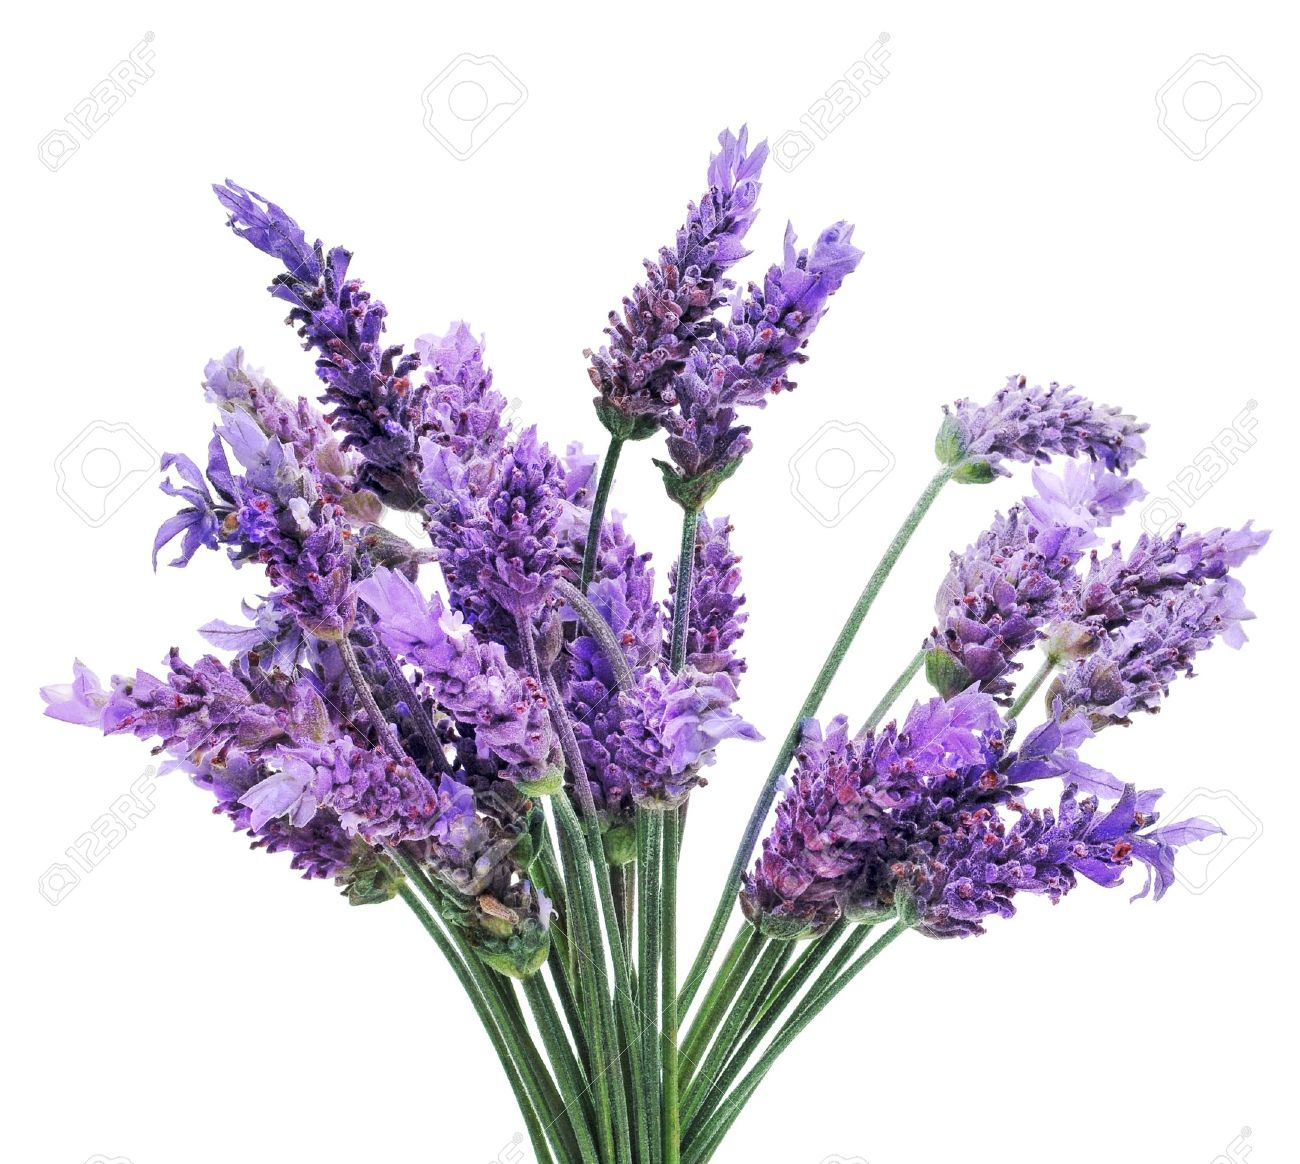 a bunch of lavender flowers on a white background stock photo, Beautiful flower